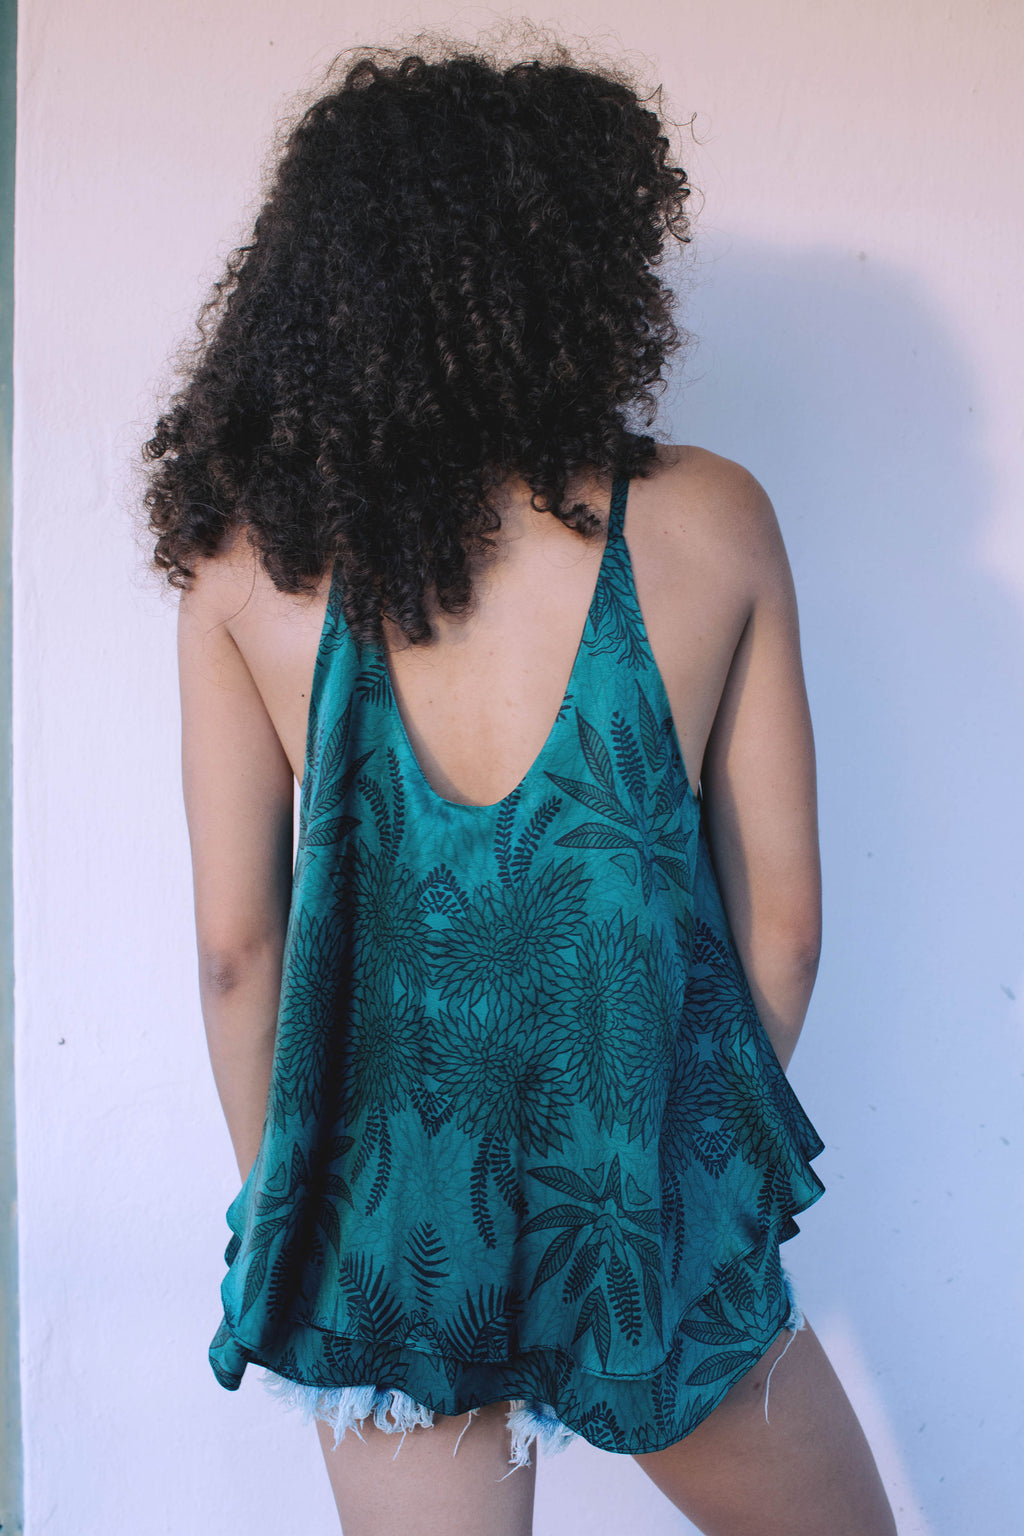 Strap top in Soul Tree Print. A deep emerald green background with black fern silhouette